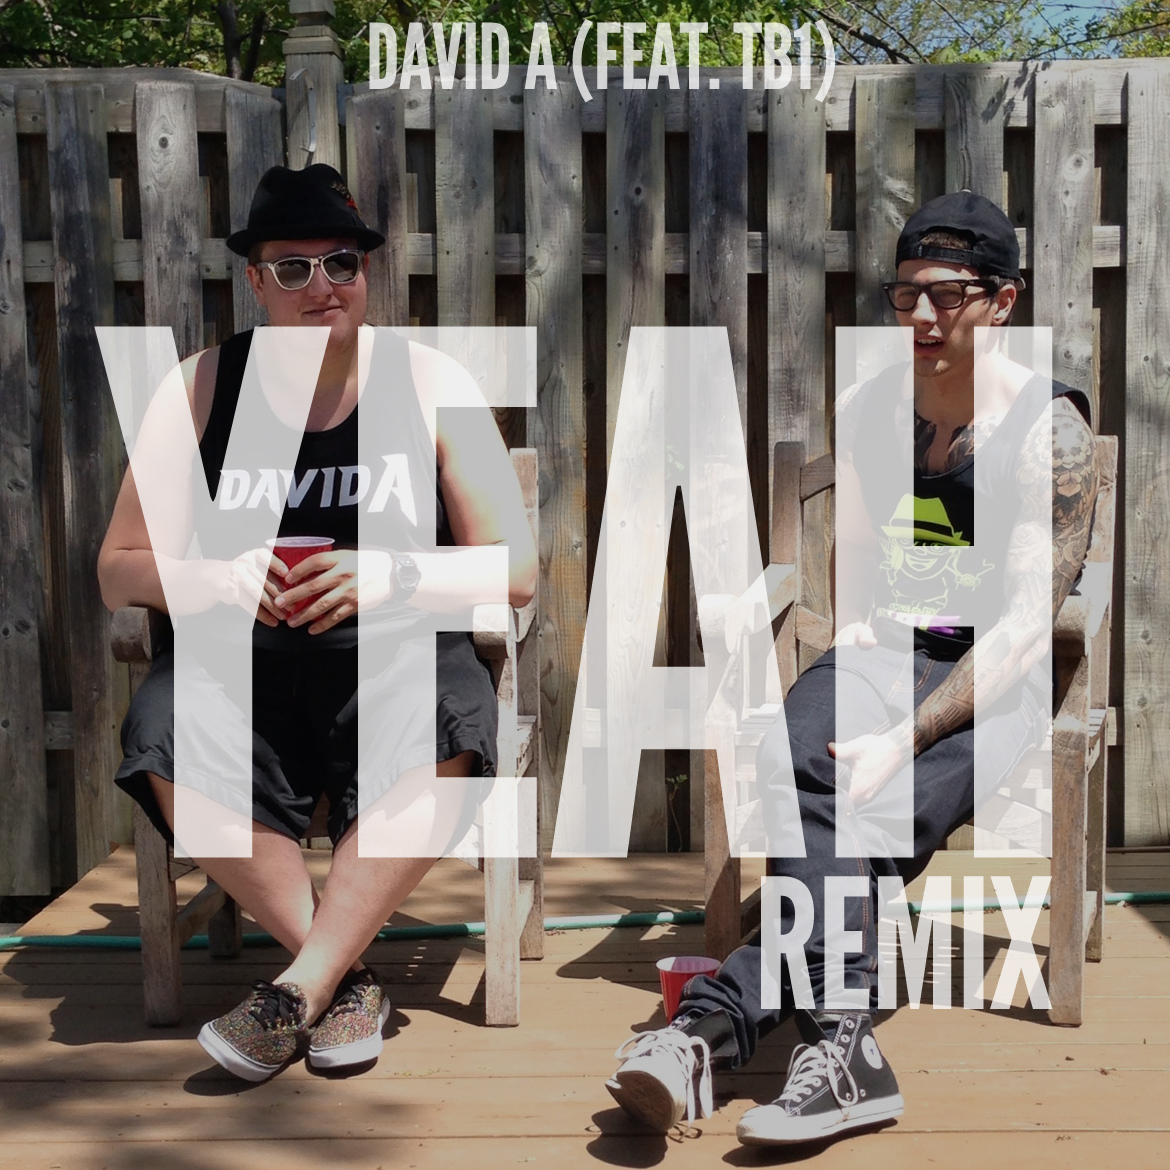 David A and TB1′s new Yeah Remix featuring Usher.